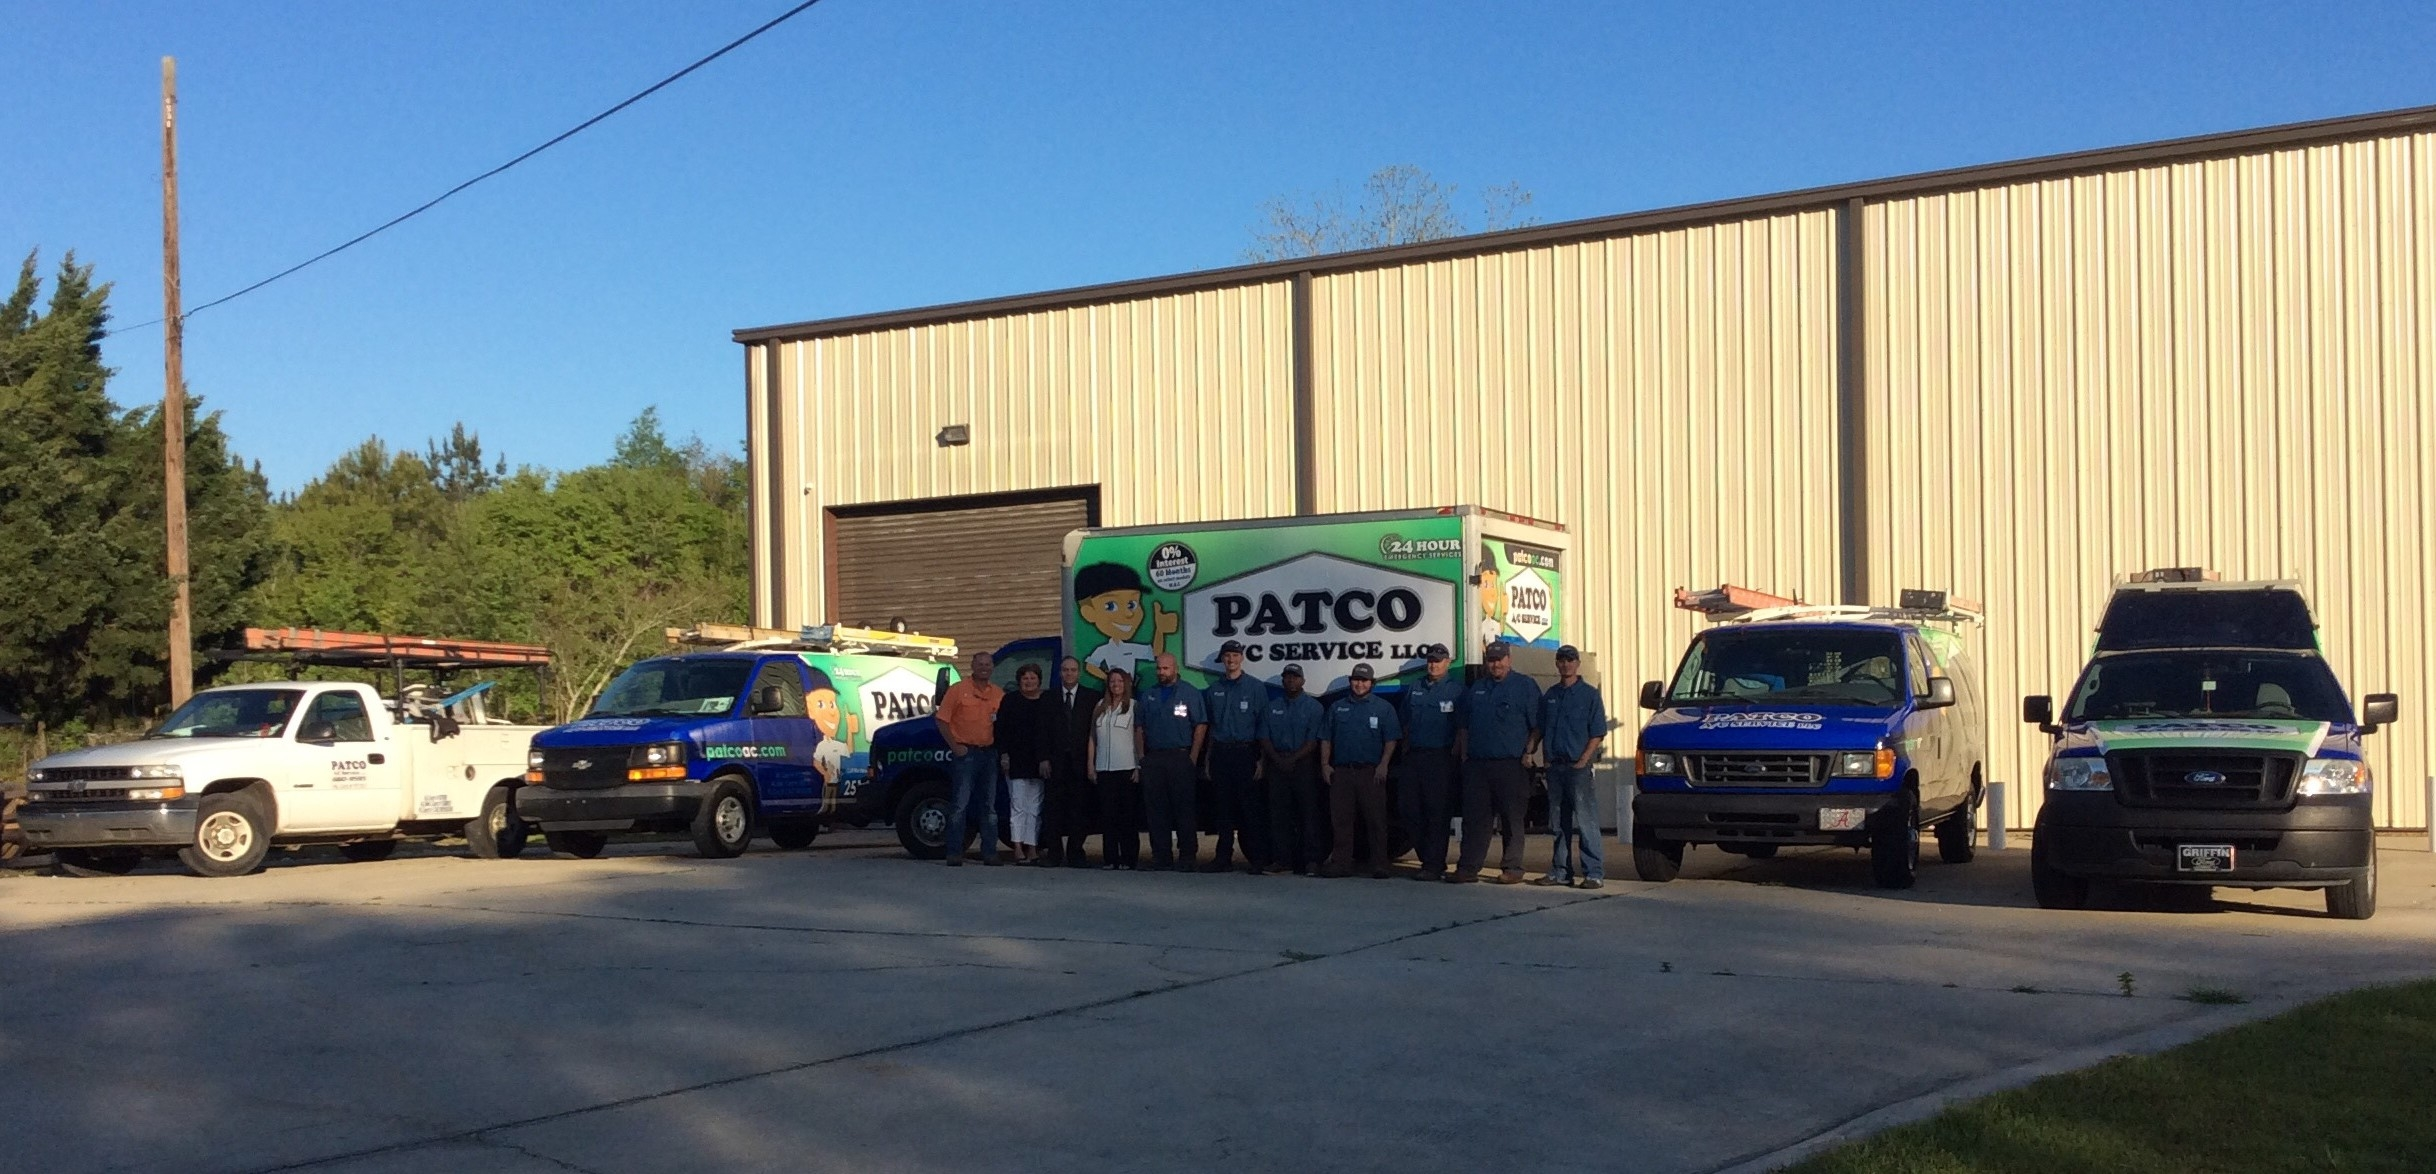 Patco Ac Service In Mobile Al 36693 Chamberofcommerce Com